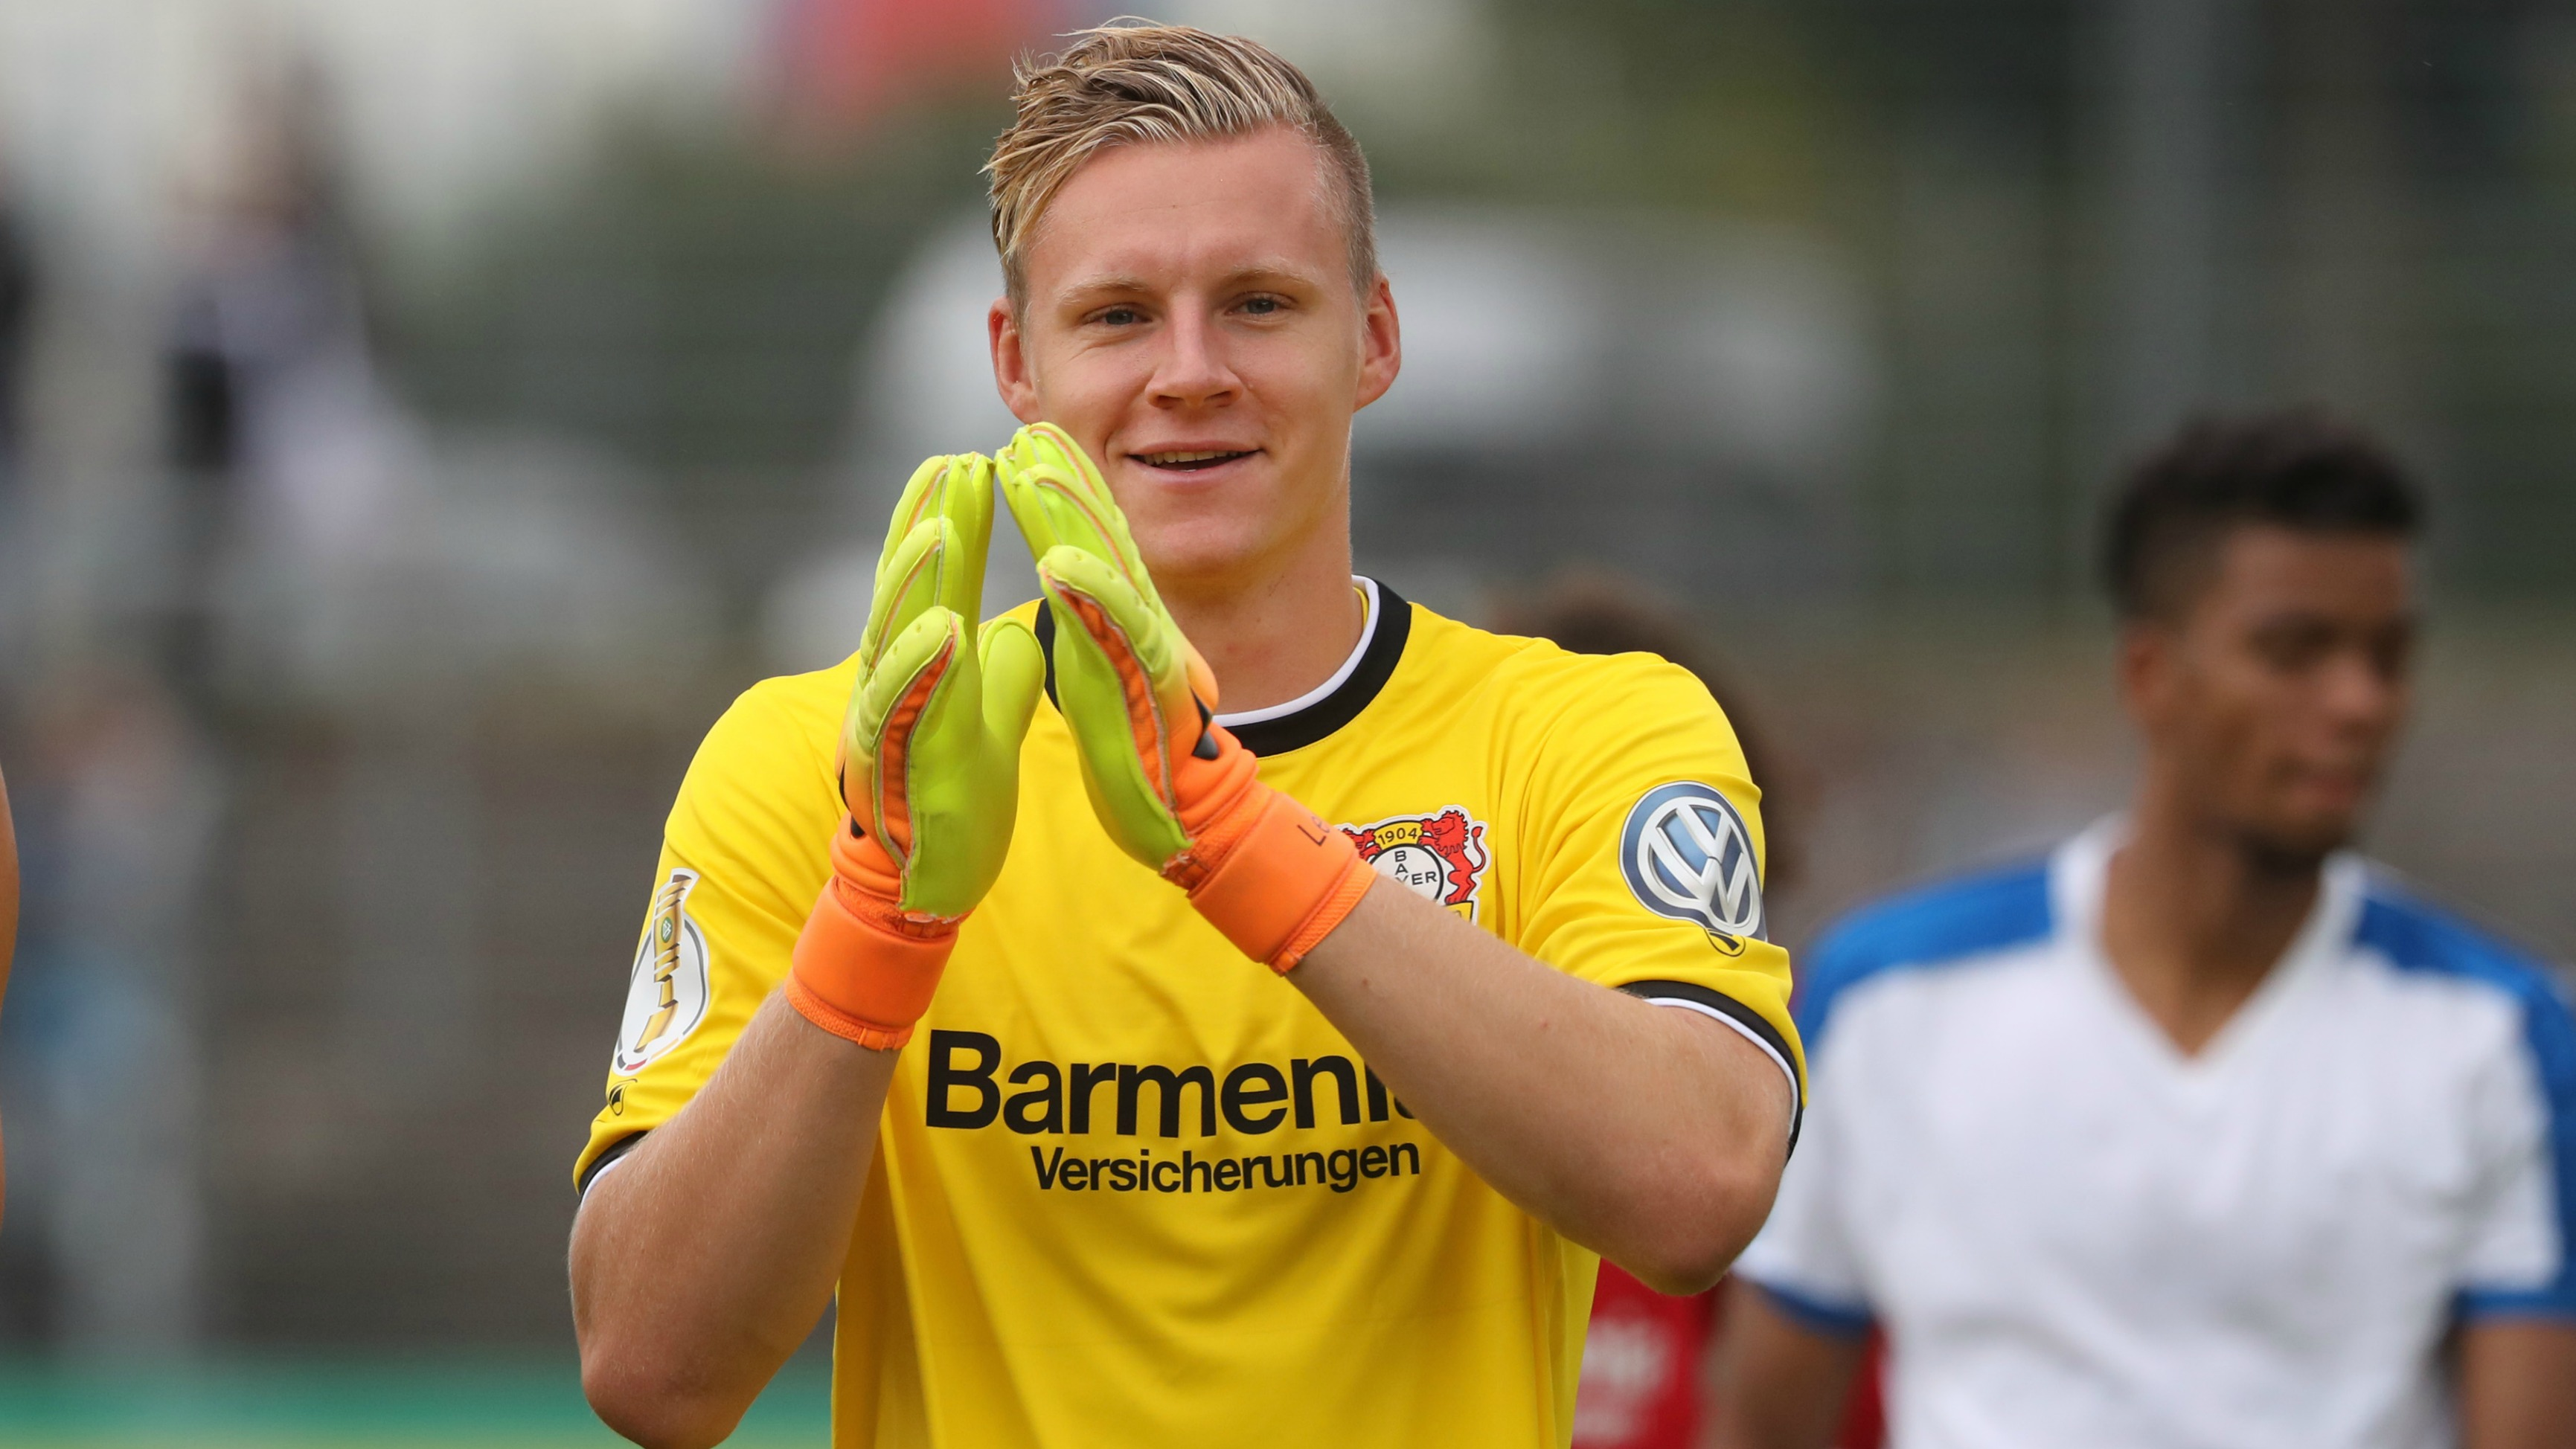 Leverkusen's Bernd Leno made two ridiculous saves with his face